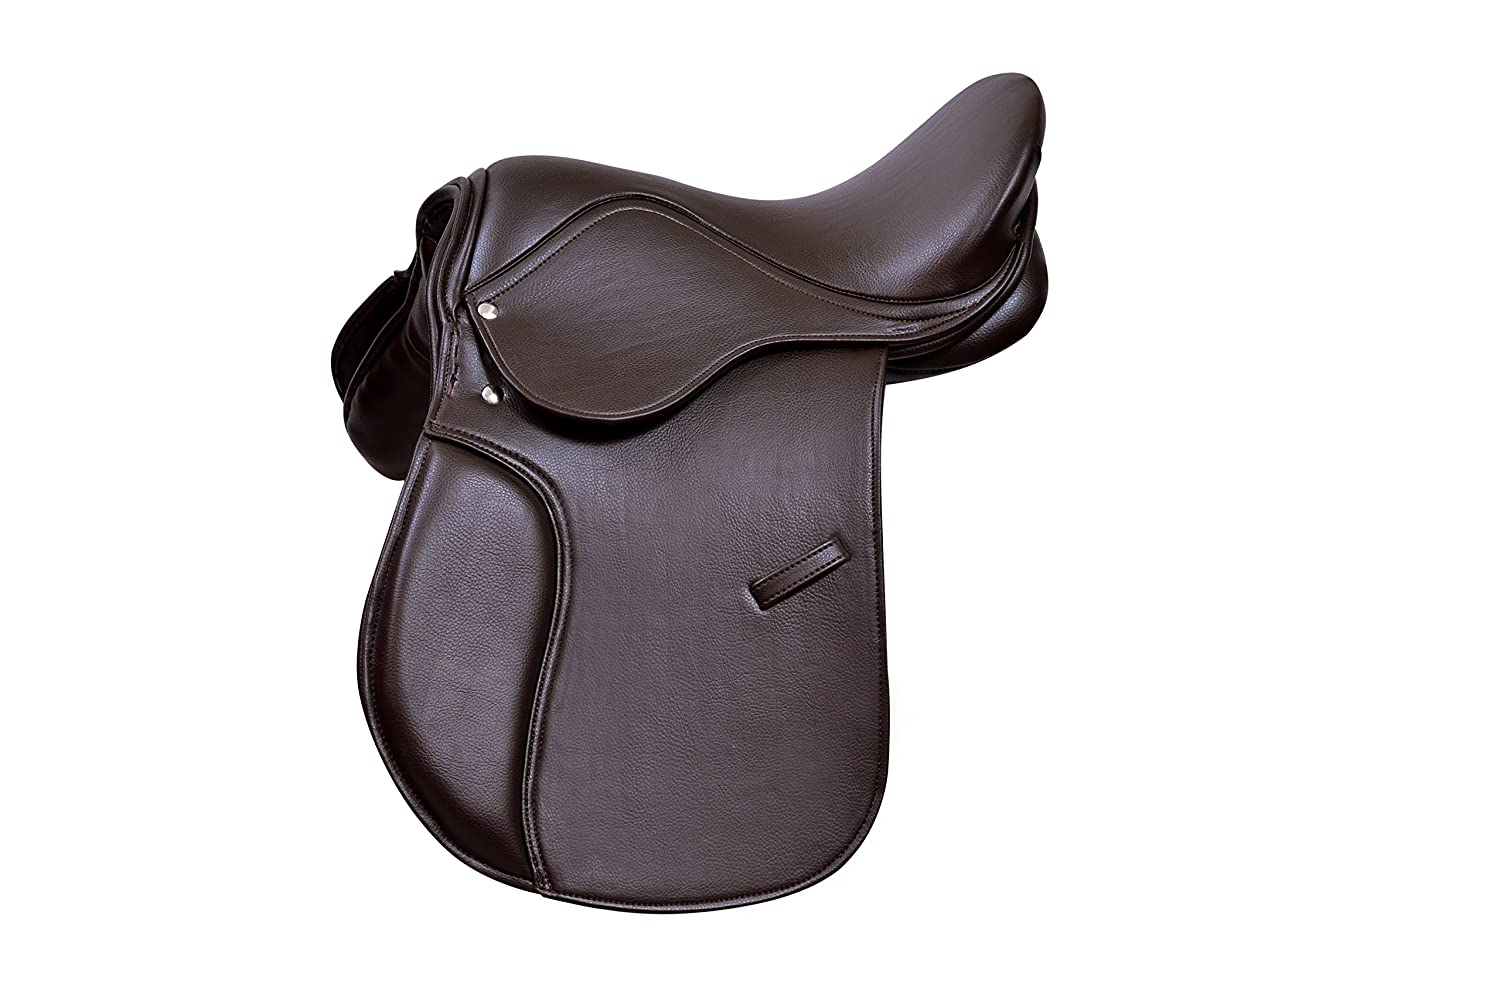 Pets2Care Synthetic General Purpose Saddle Premium Quaility Wide Fit, Black and Brown 16, 17 & 18